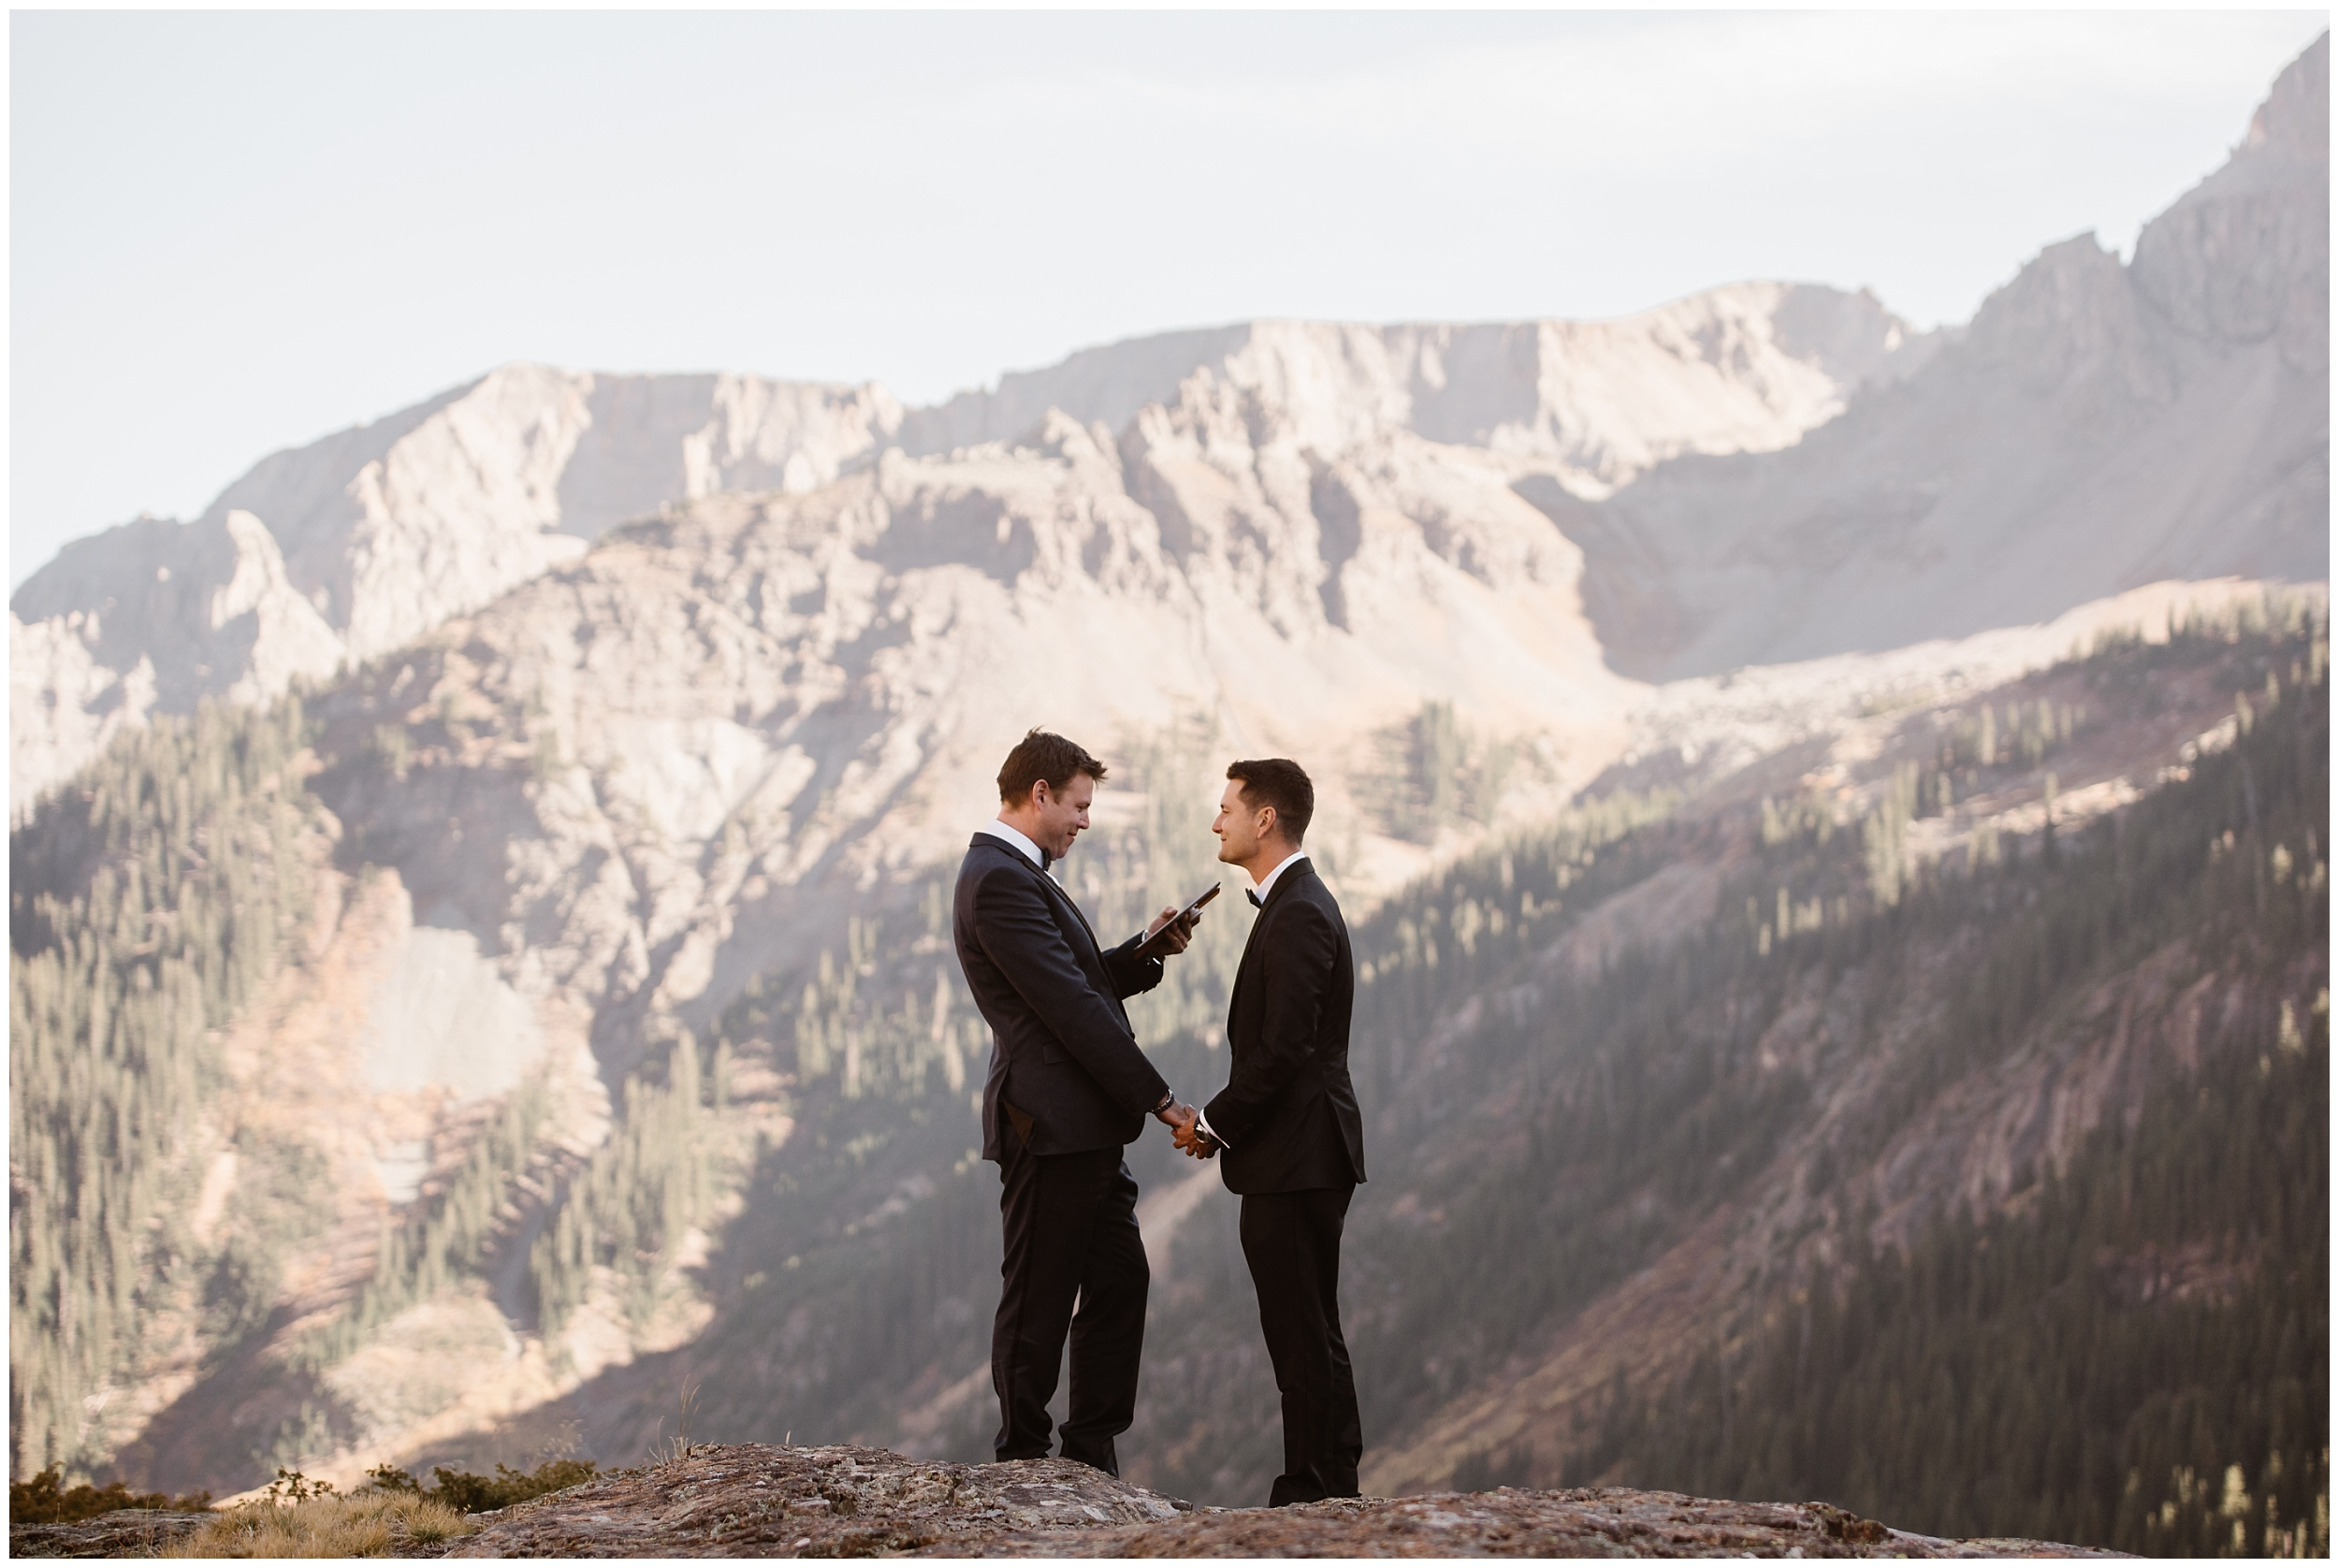 Brian and Ernie take each others hands during their elopement ceremon and read their vows to each other privately. Behind them, the San Juan moutnain range rises toward the sky and the sun casts a golden glow on the trees and moutnains.